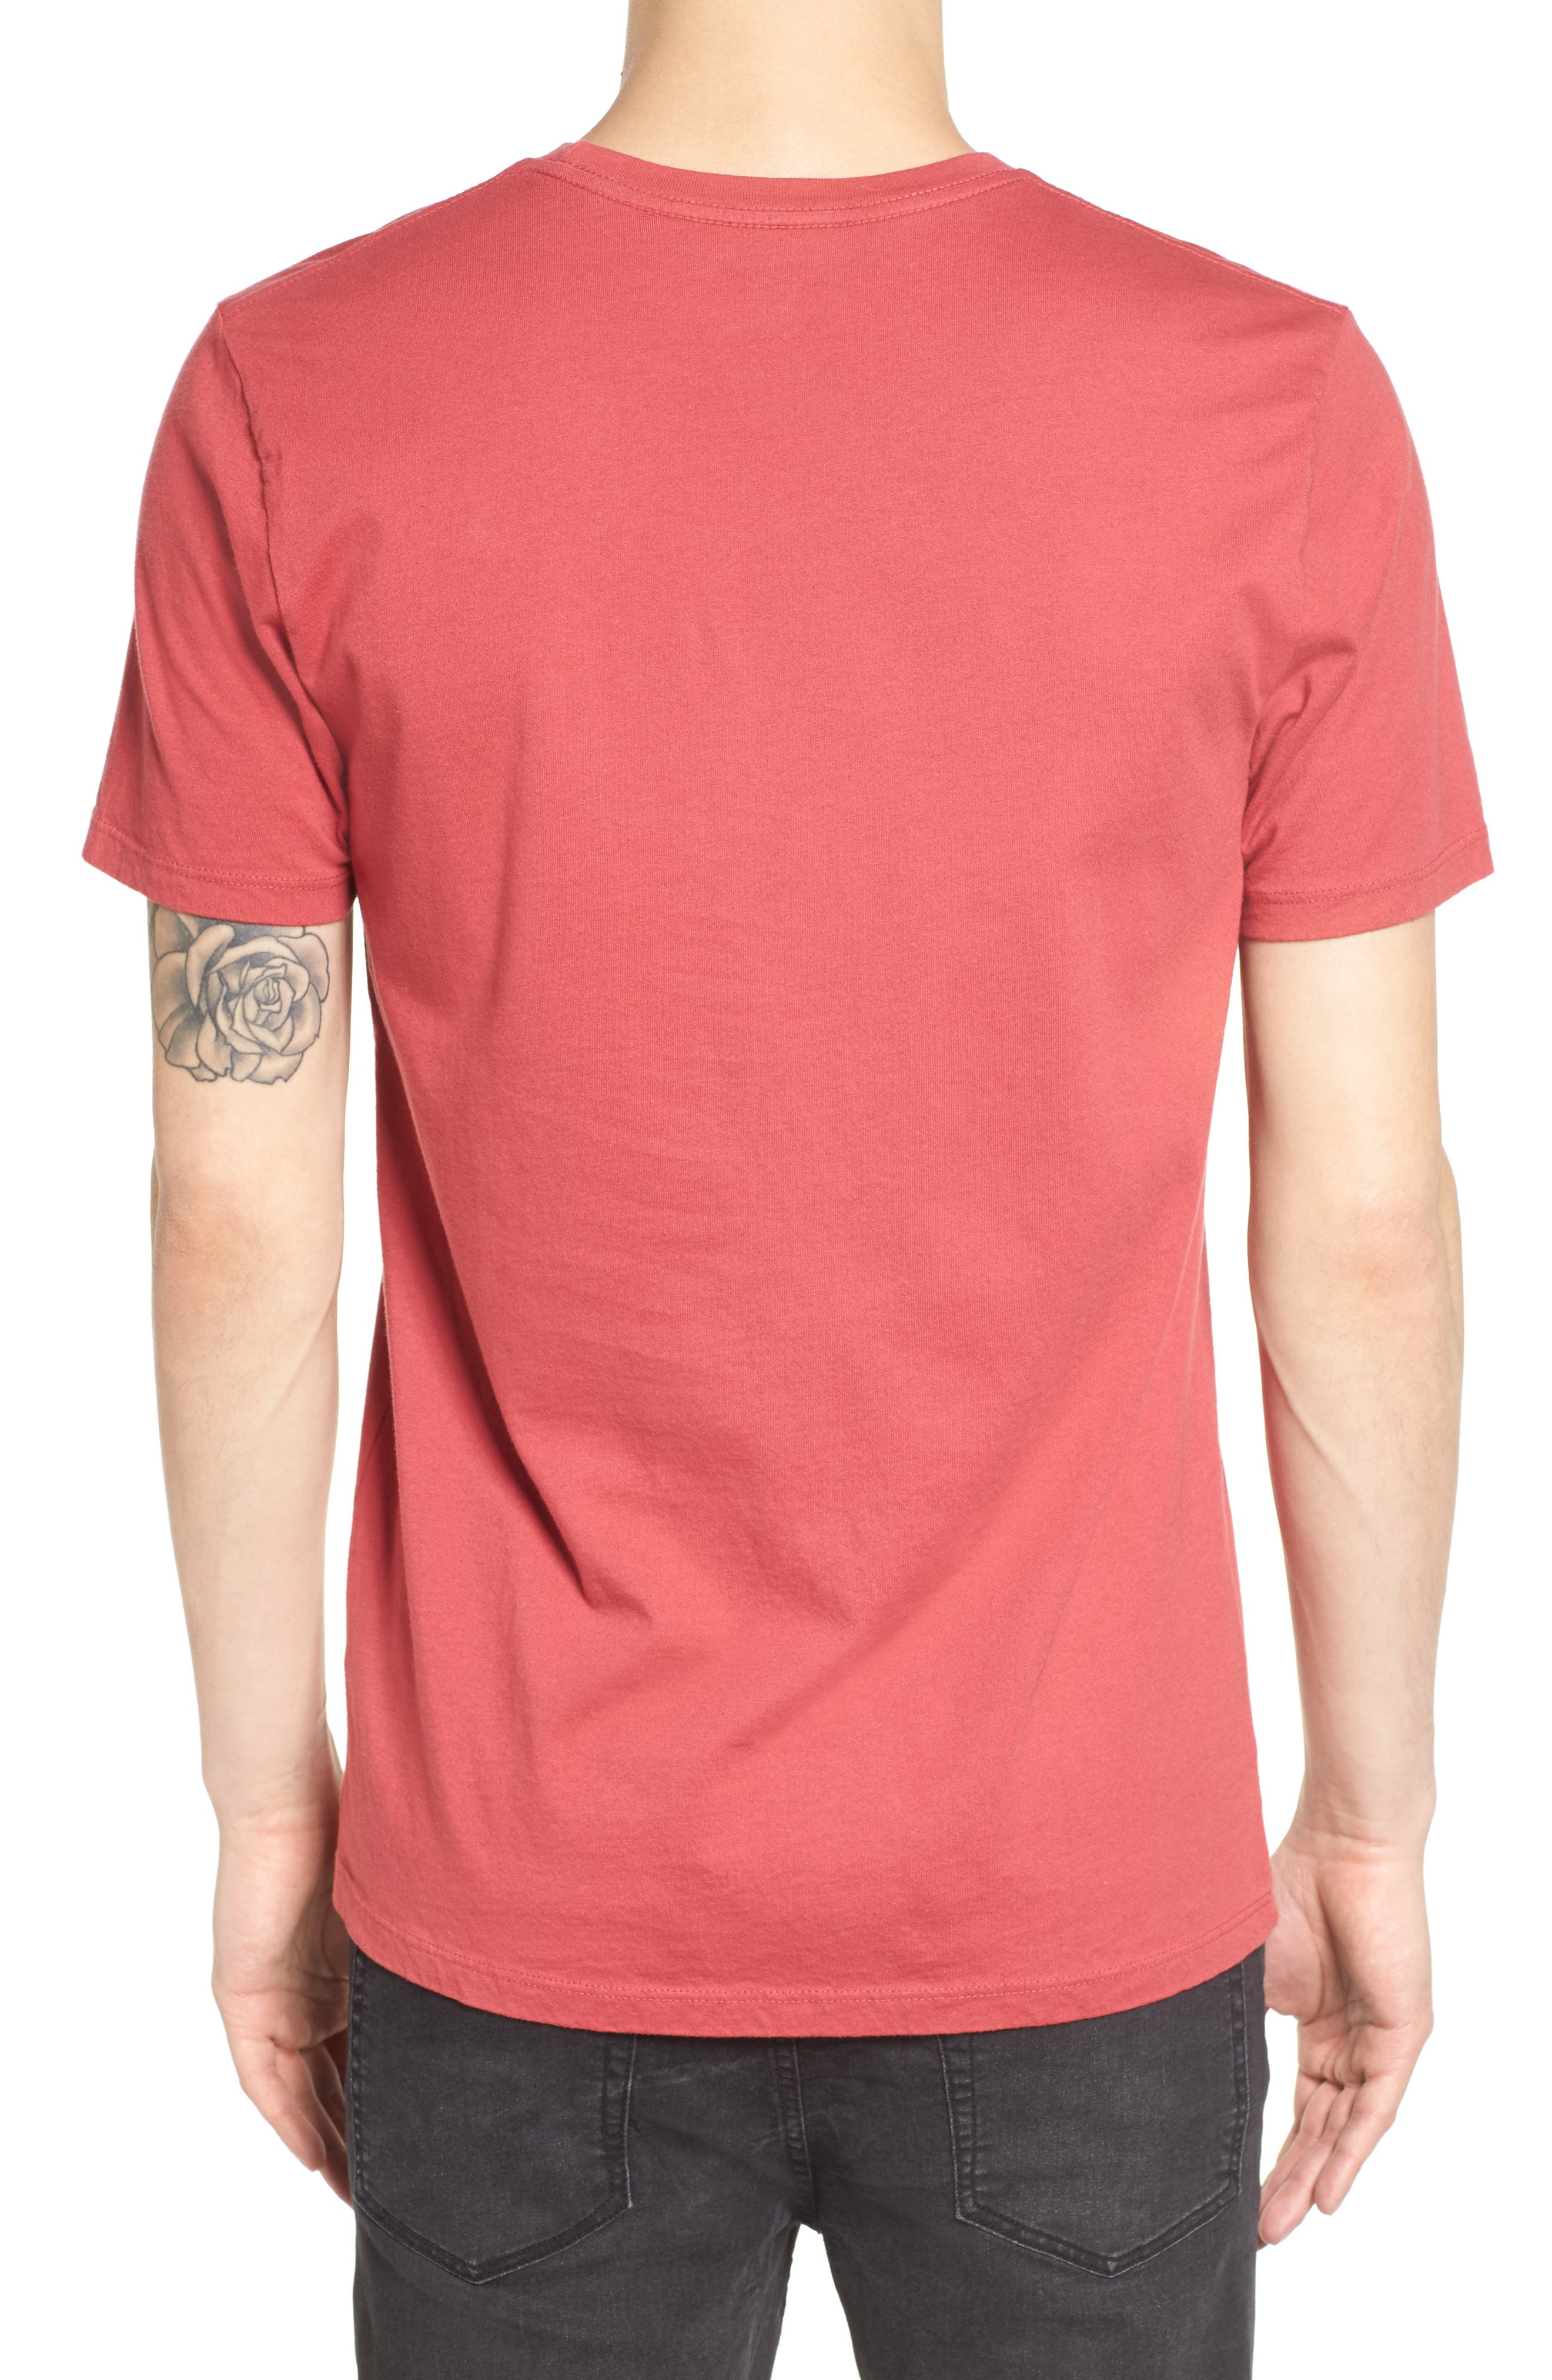 Vibes Embroidered T-Shirt,                             Alternate thumbnail 2, color,                             685